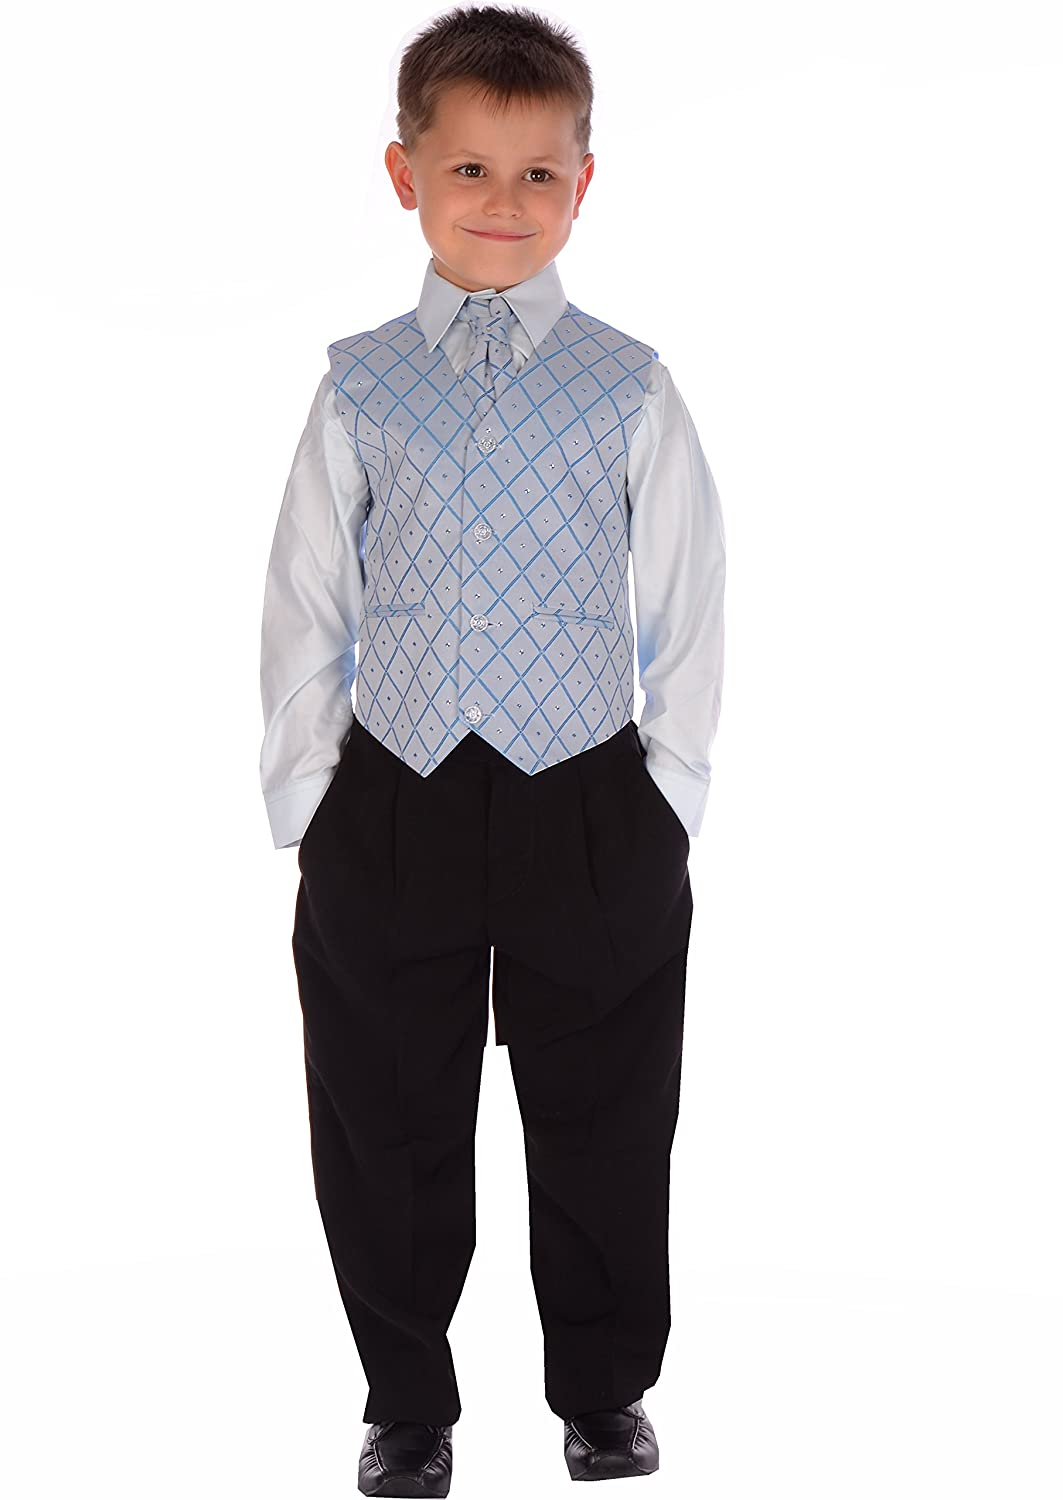 Boys Suits Black and Blue Suit Wedding Formal Pageboy Usher 4 Piece Age 0-3 month to 14-15 years